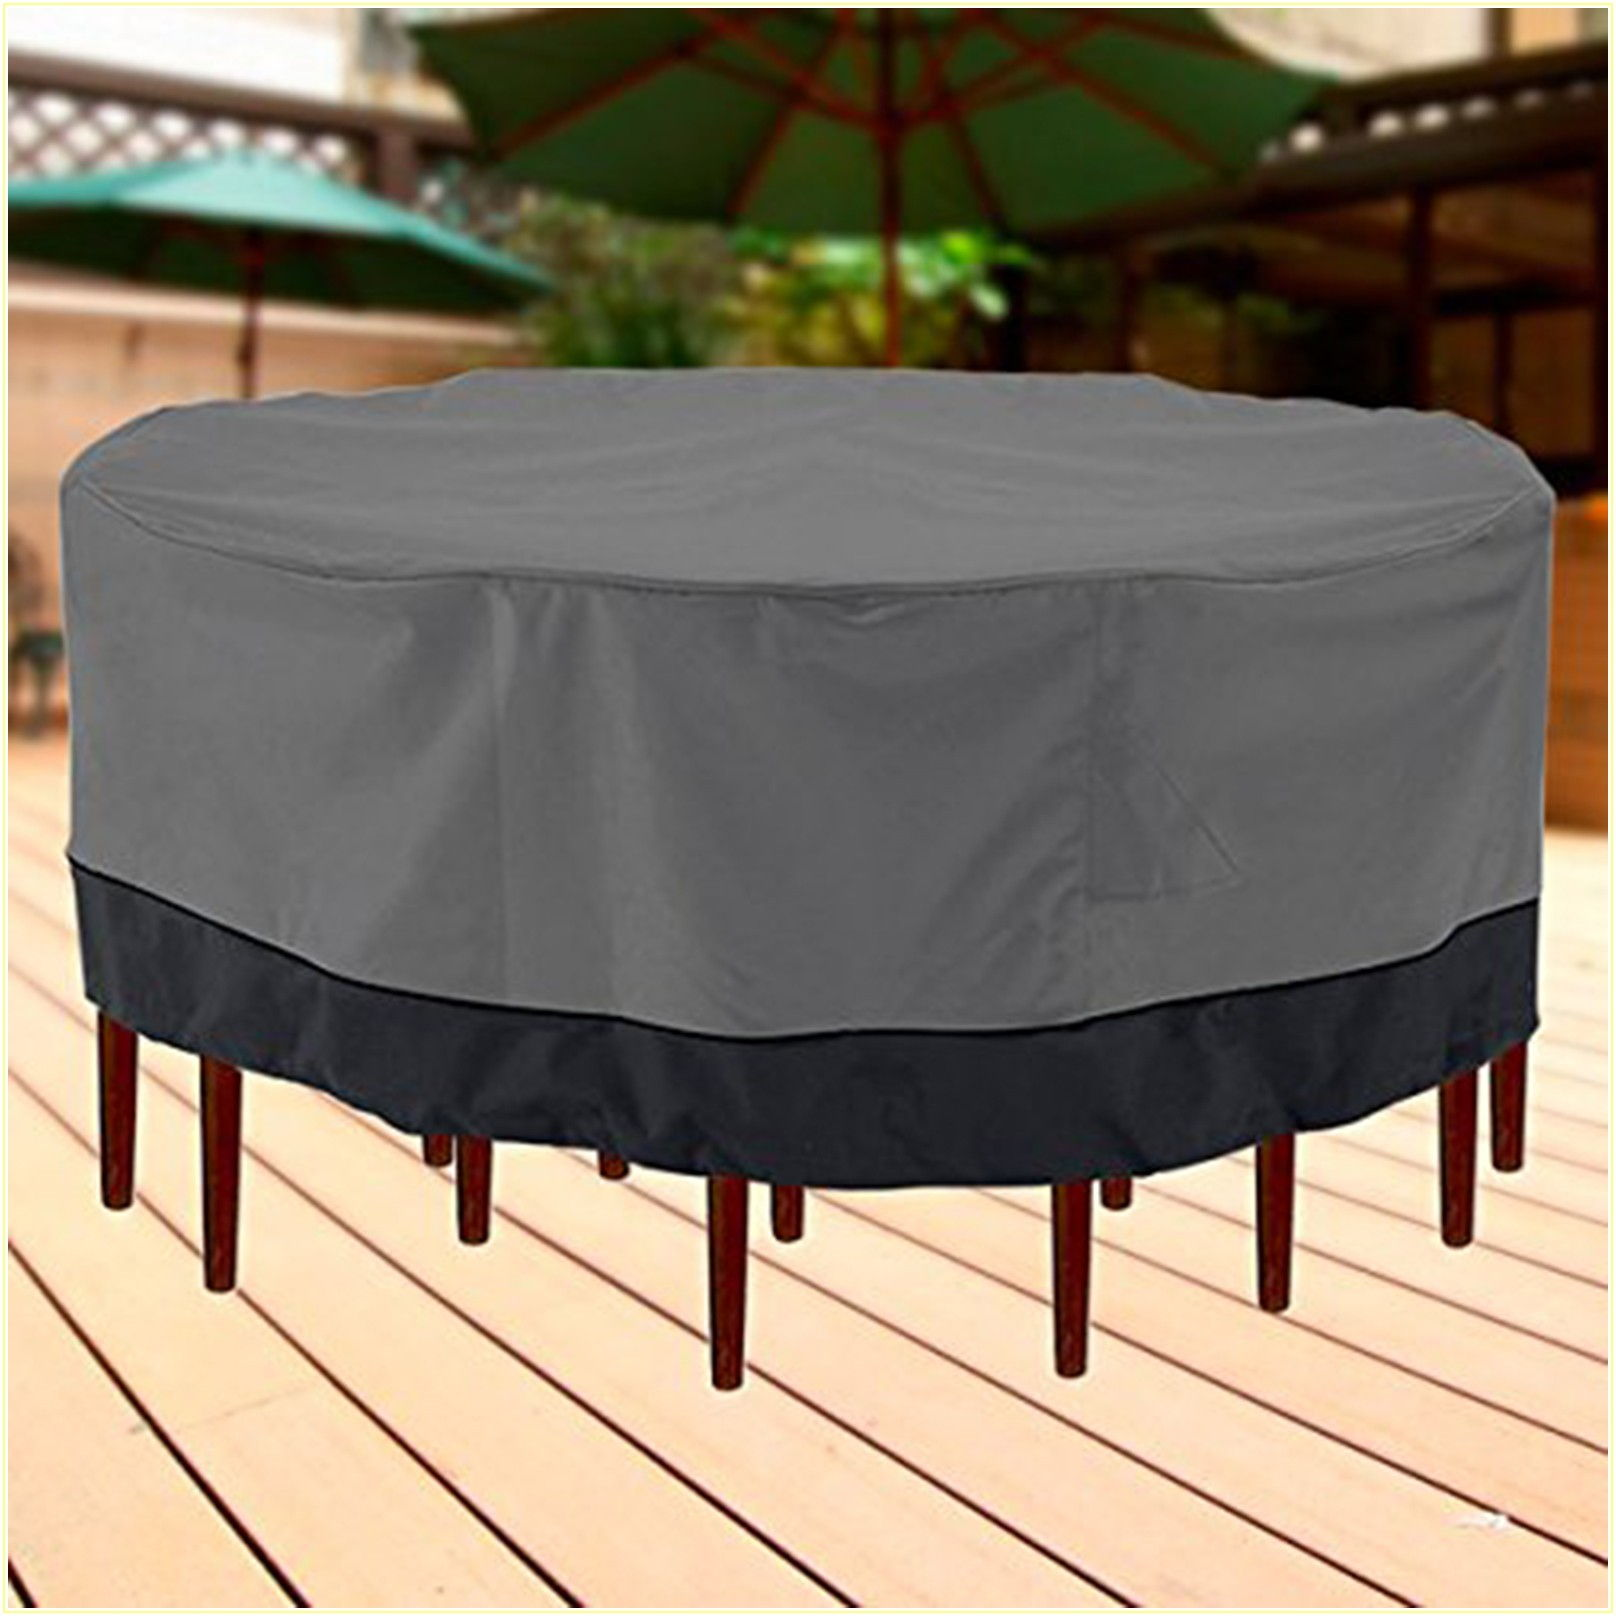 Outdoor Patio Table And Chairs Cover